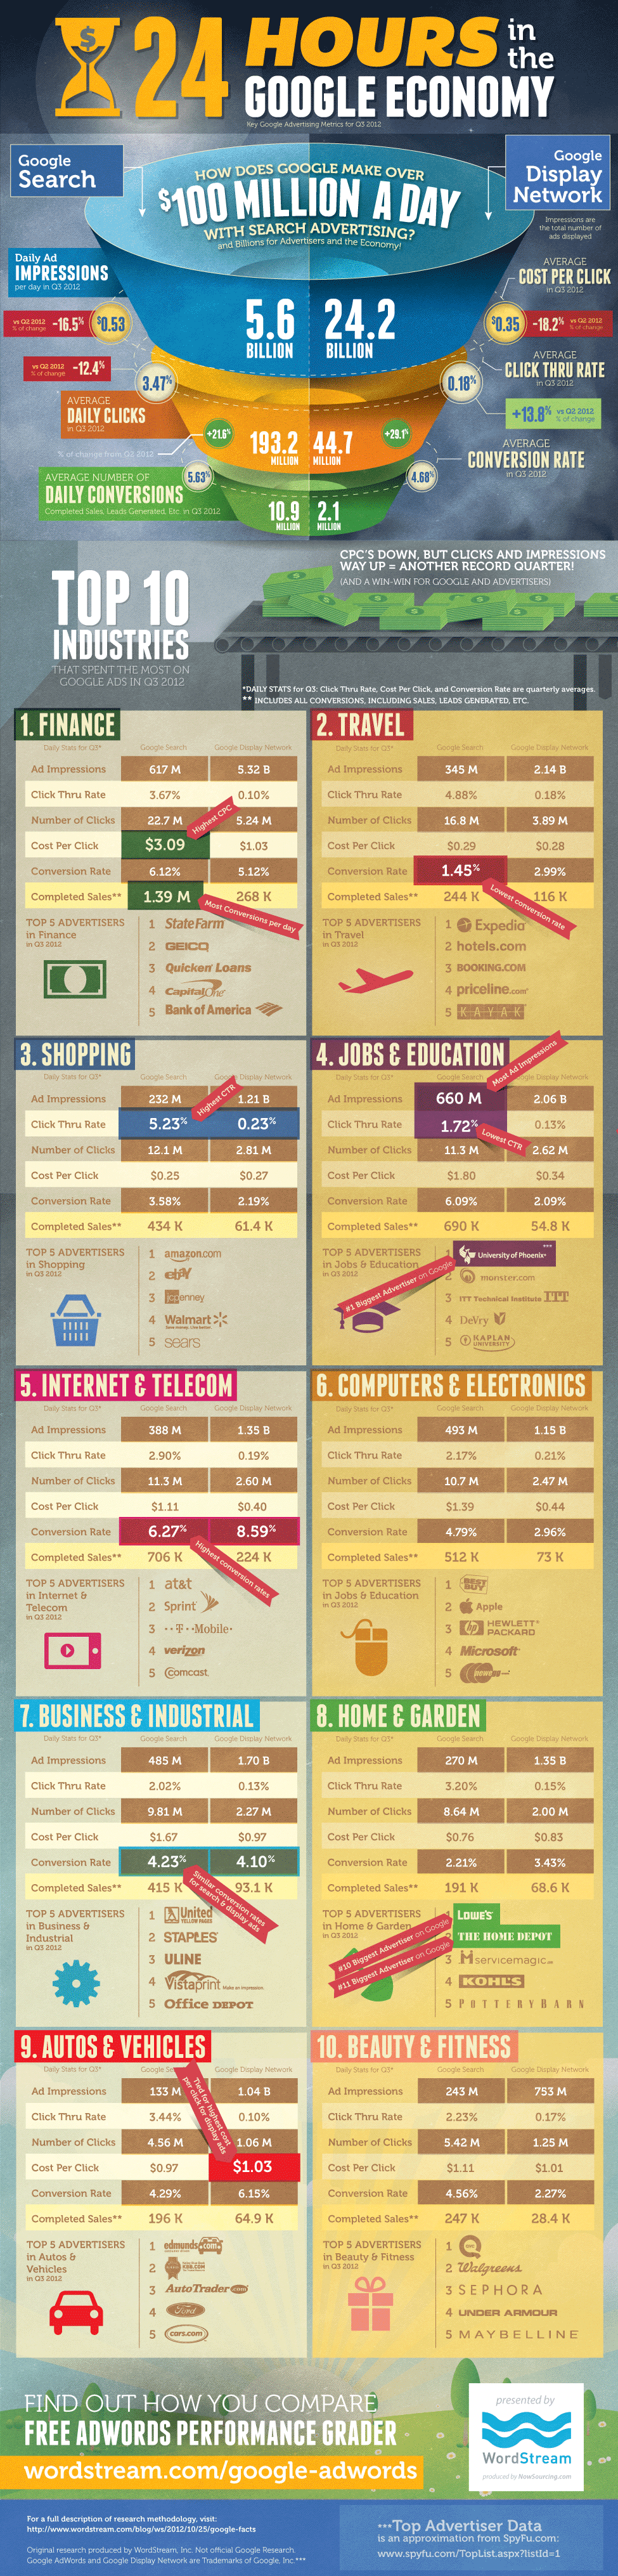 Analyse comparée Google Adwords et Google Display